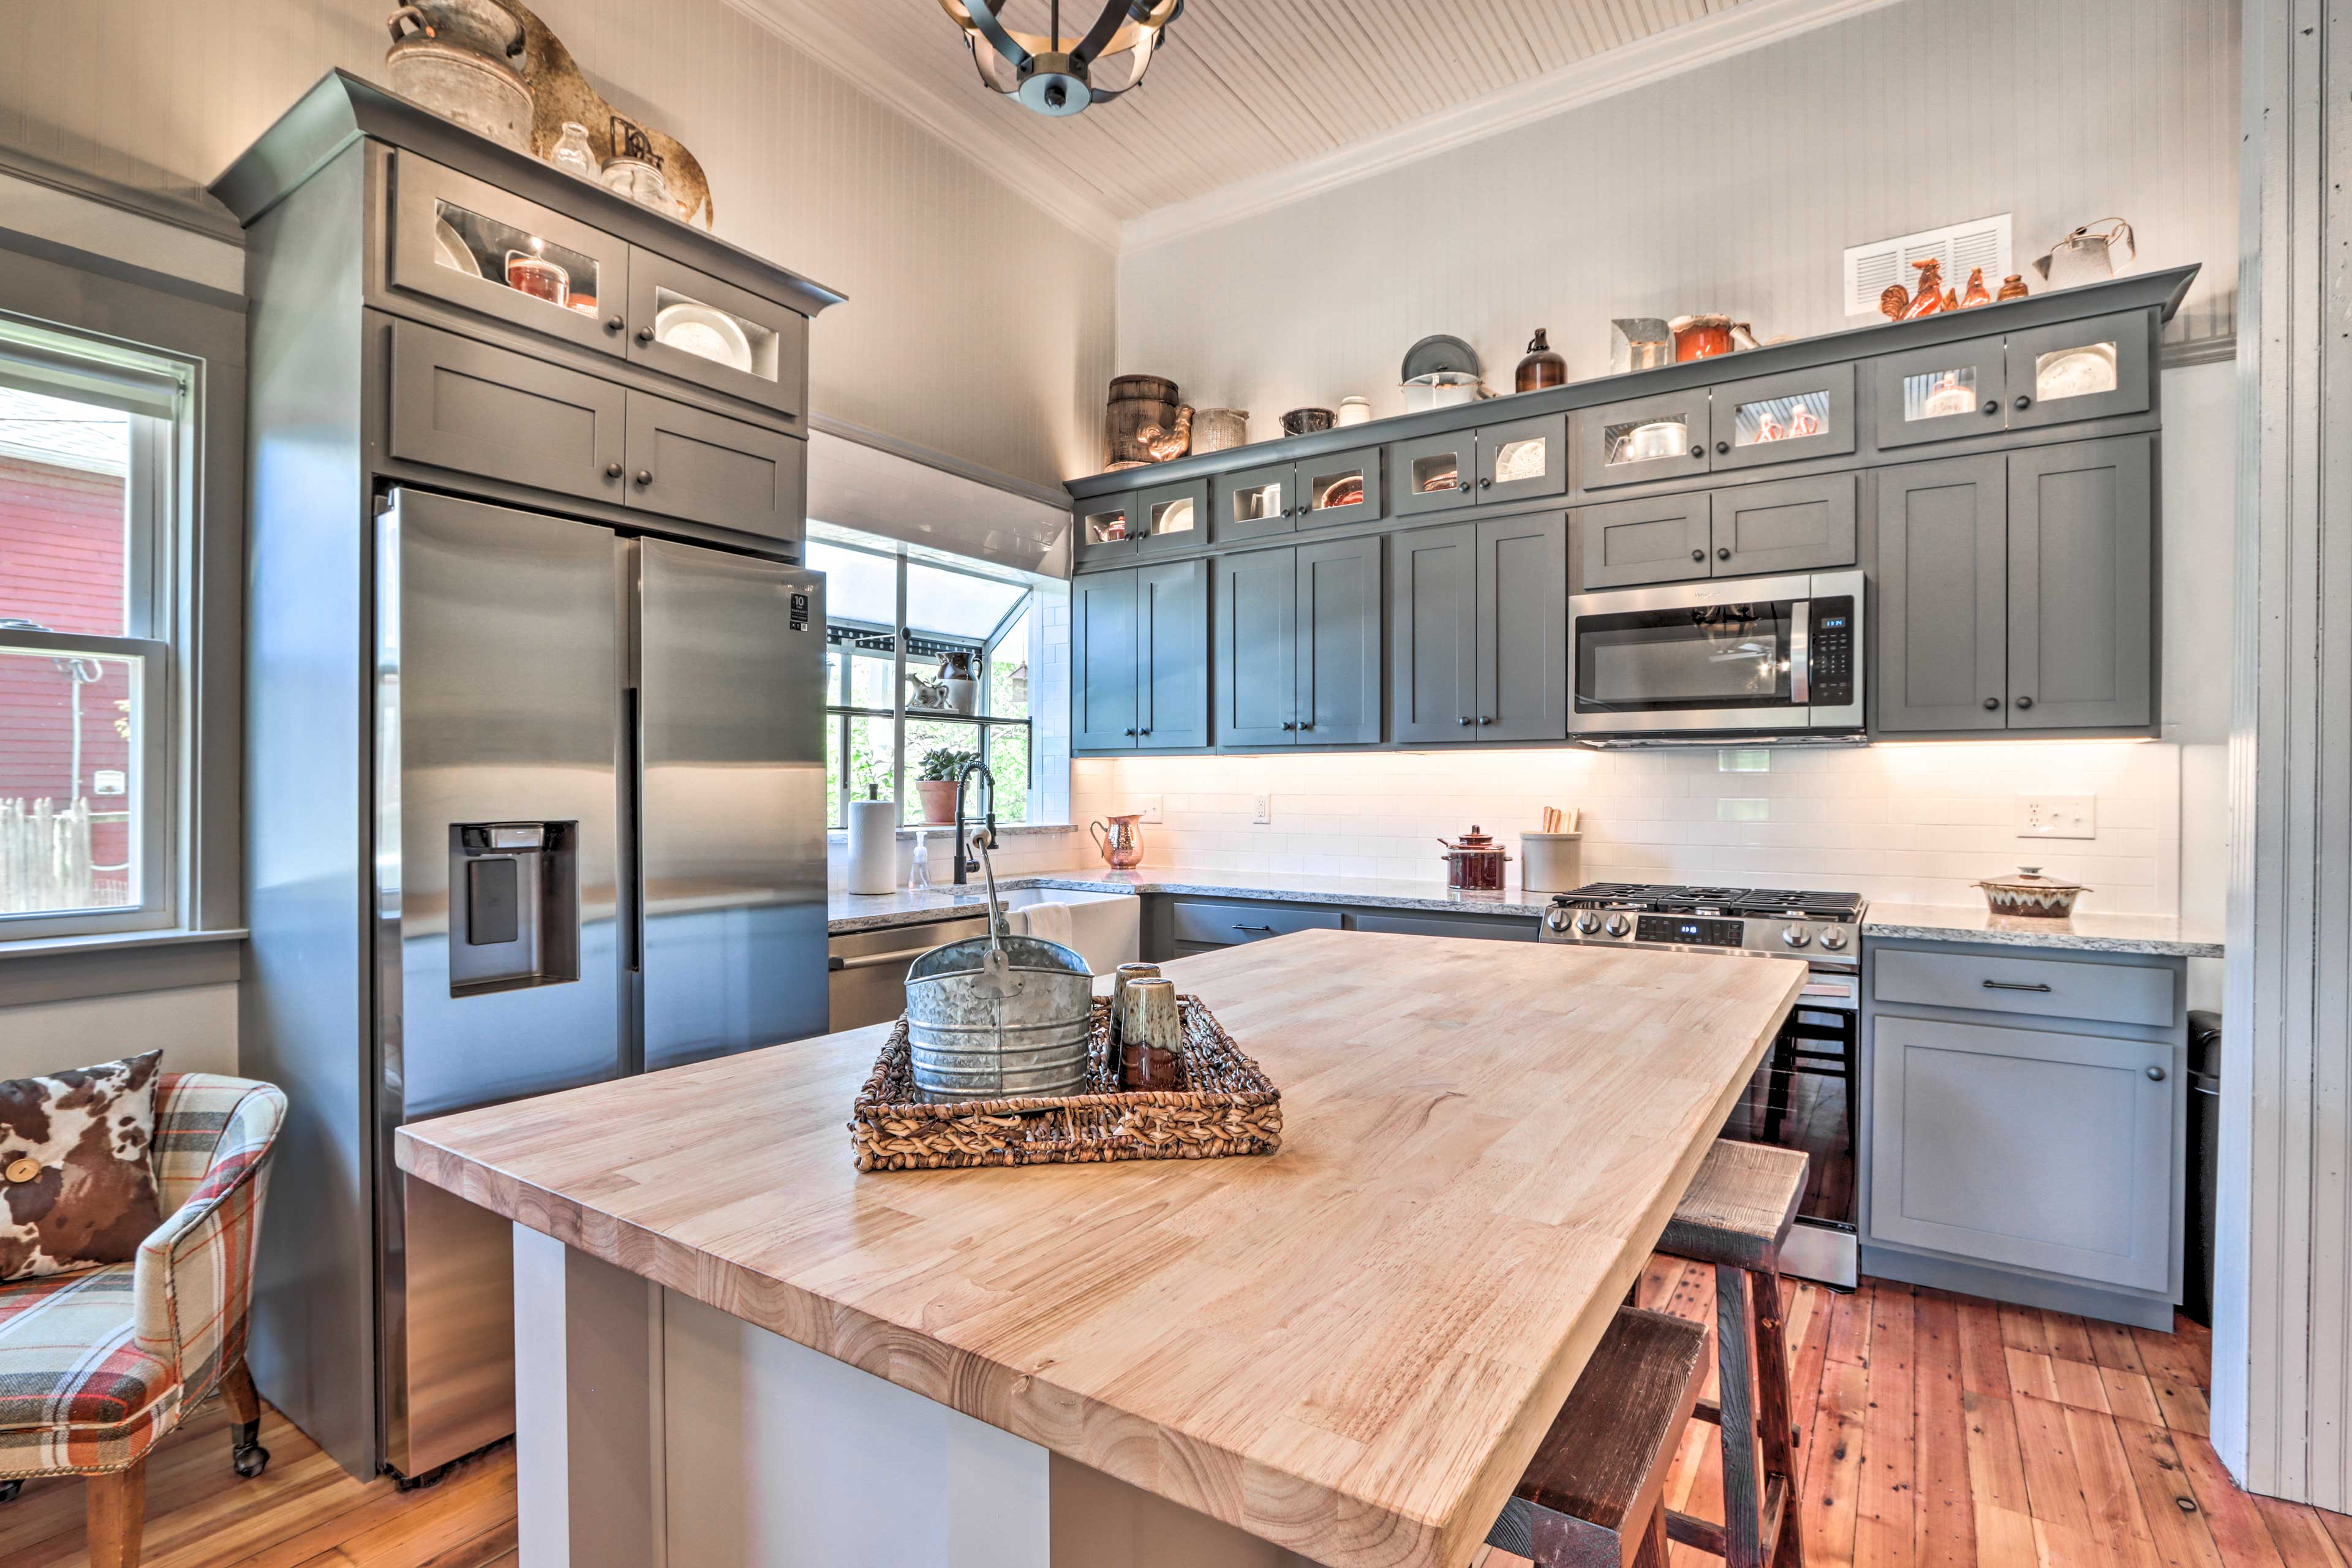 Kitchen | Fully Equipped | Cooking Utensils